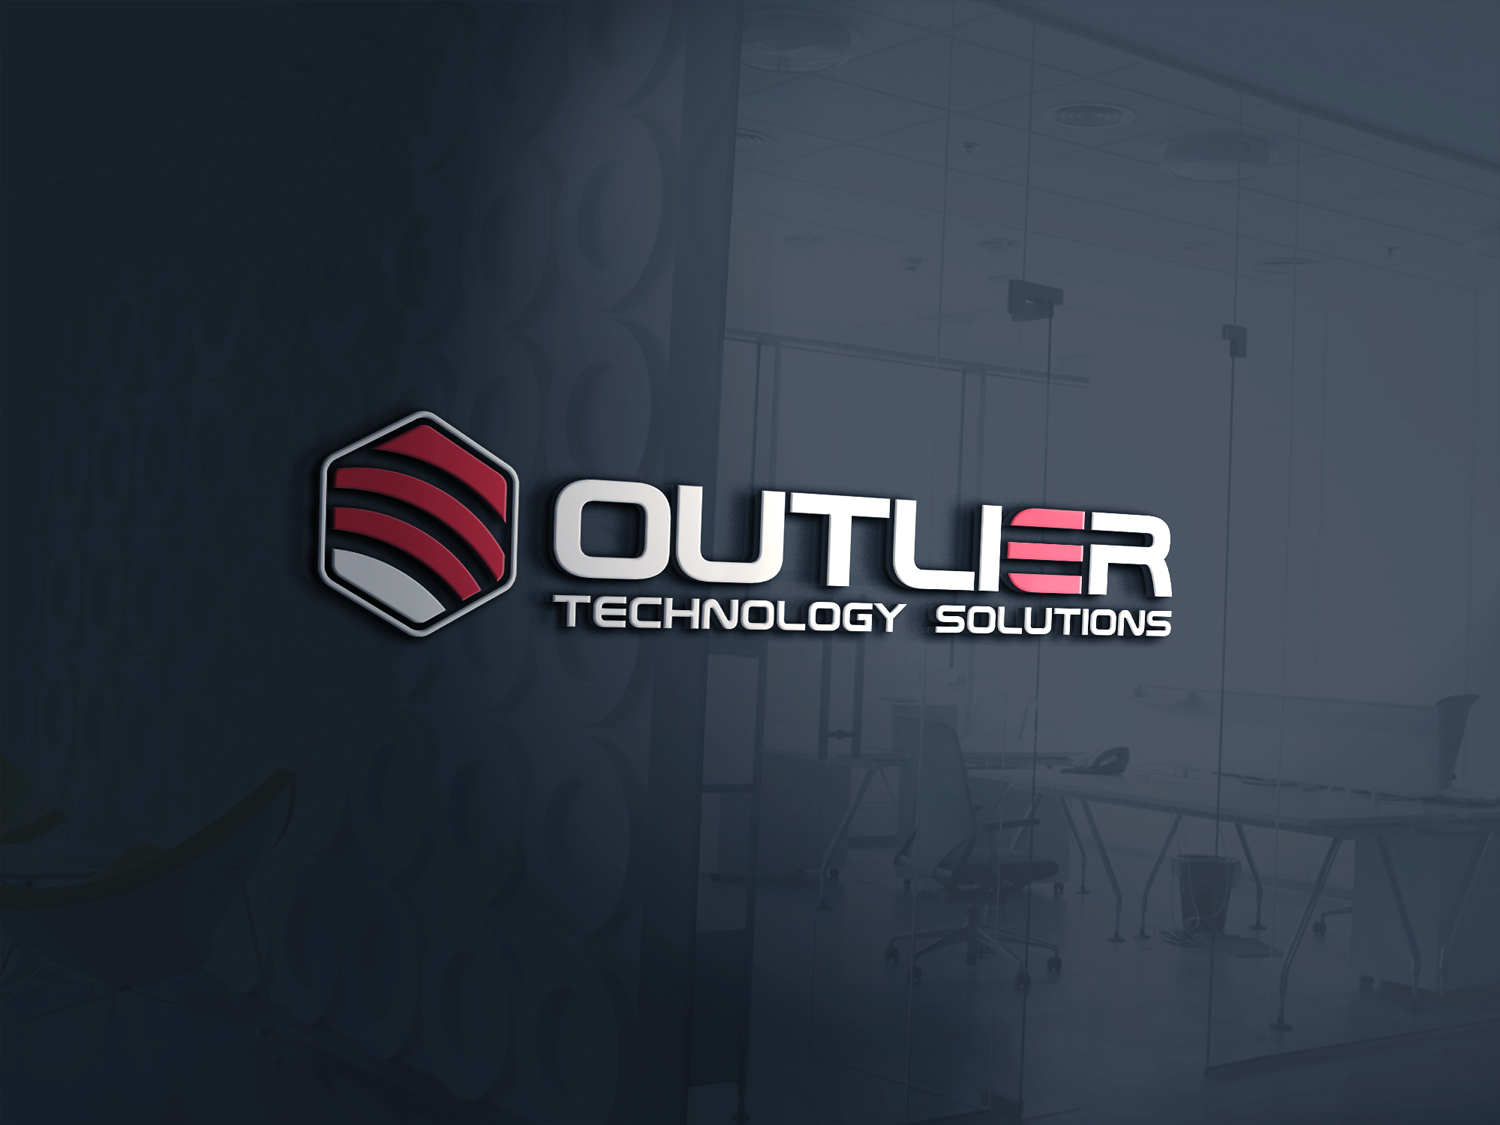 Modern Upmarket It Company Logo Design For Outlier Outlier Tech Outlier Technology Solutions Or Any Better Idea By Fairylogic Design 13182126